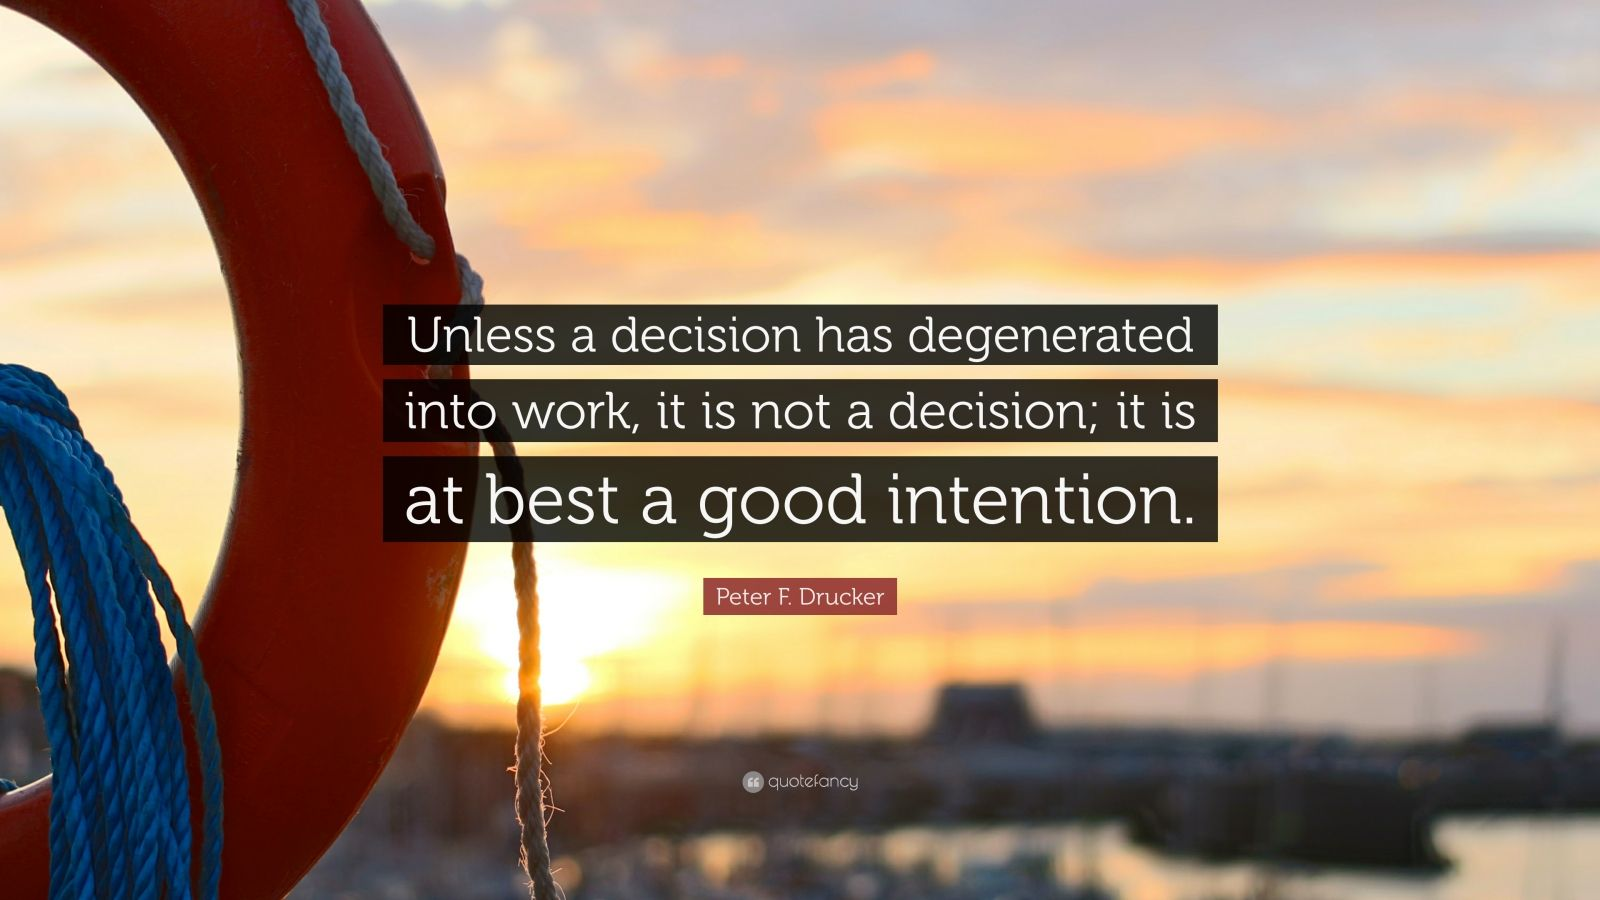 """Peter F. Drucker Quote: """"Unless a decision has degenerated into work, it is not a decision; it is at best a good intention."""""""